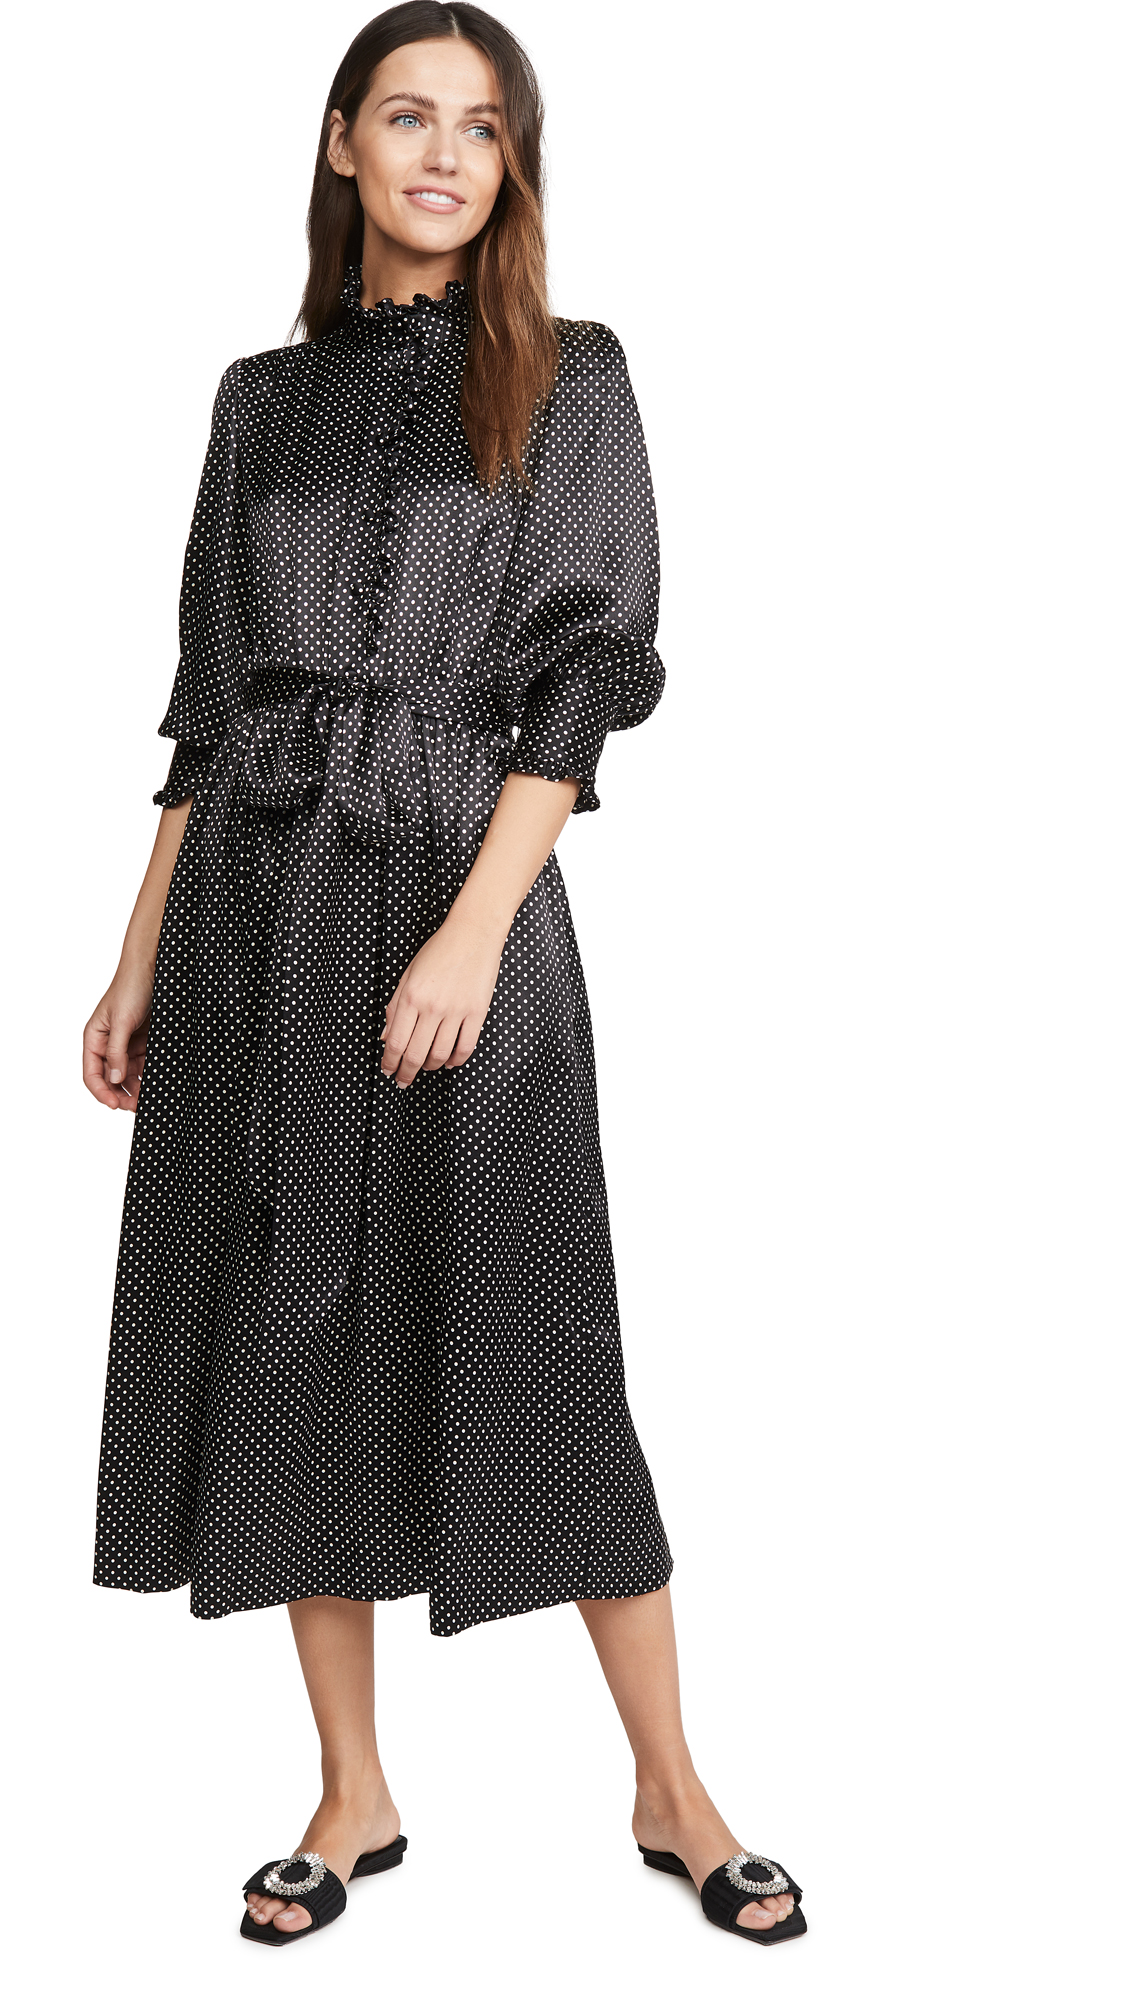 Runway Marc Jacobs Dress With Ruffle At Collar & Cuffs - 30% Off Sale